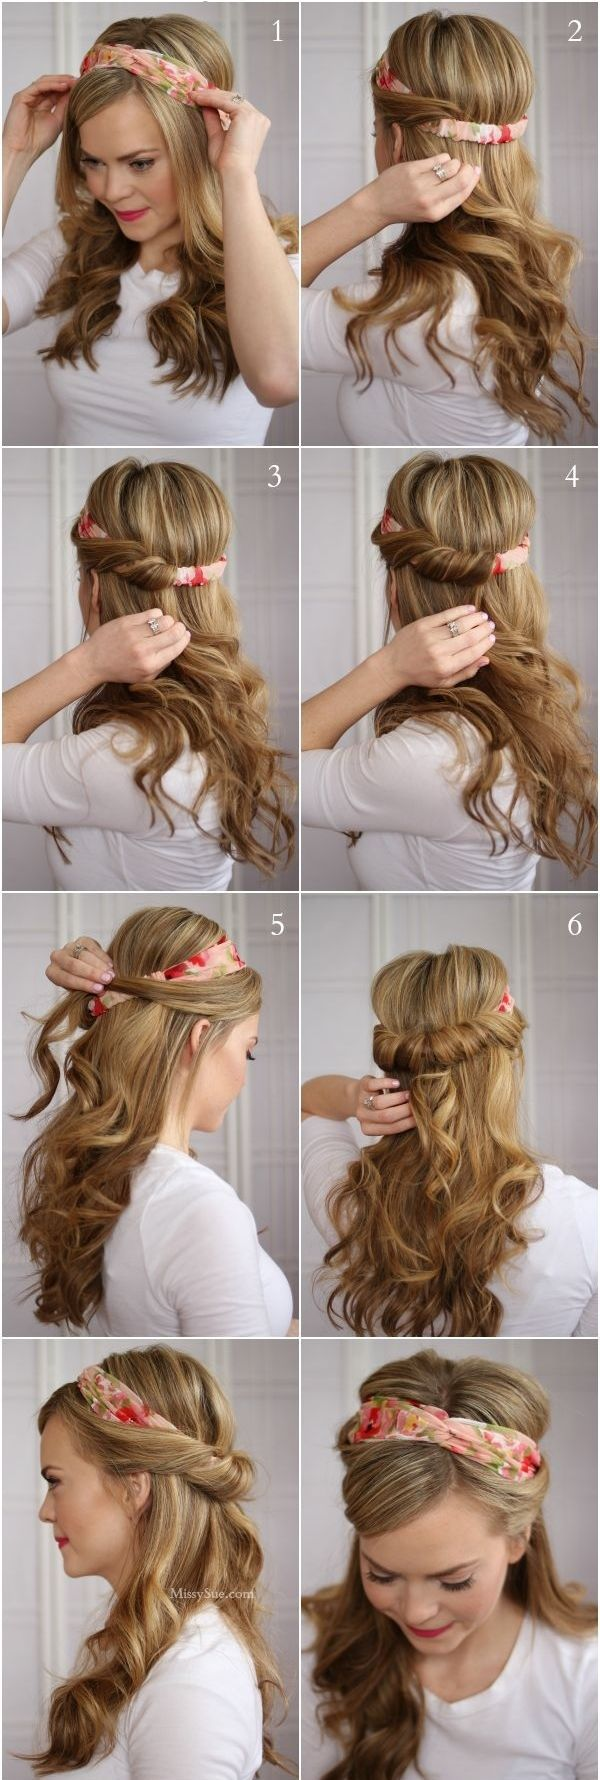 Hairstyling Hacks for Lazy Girl